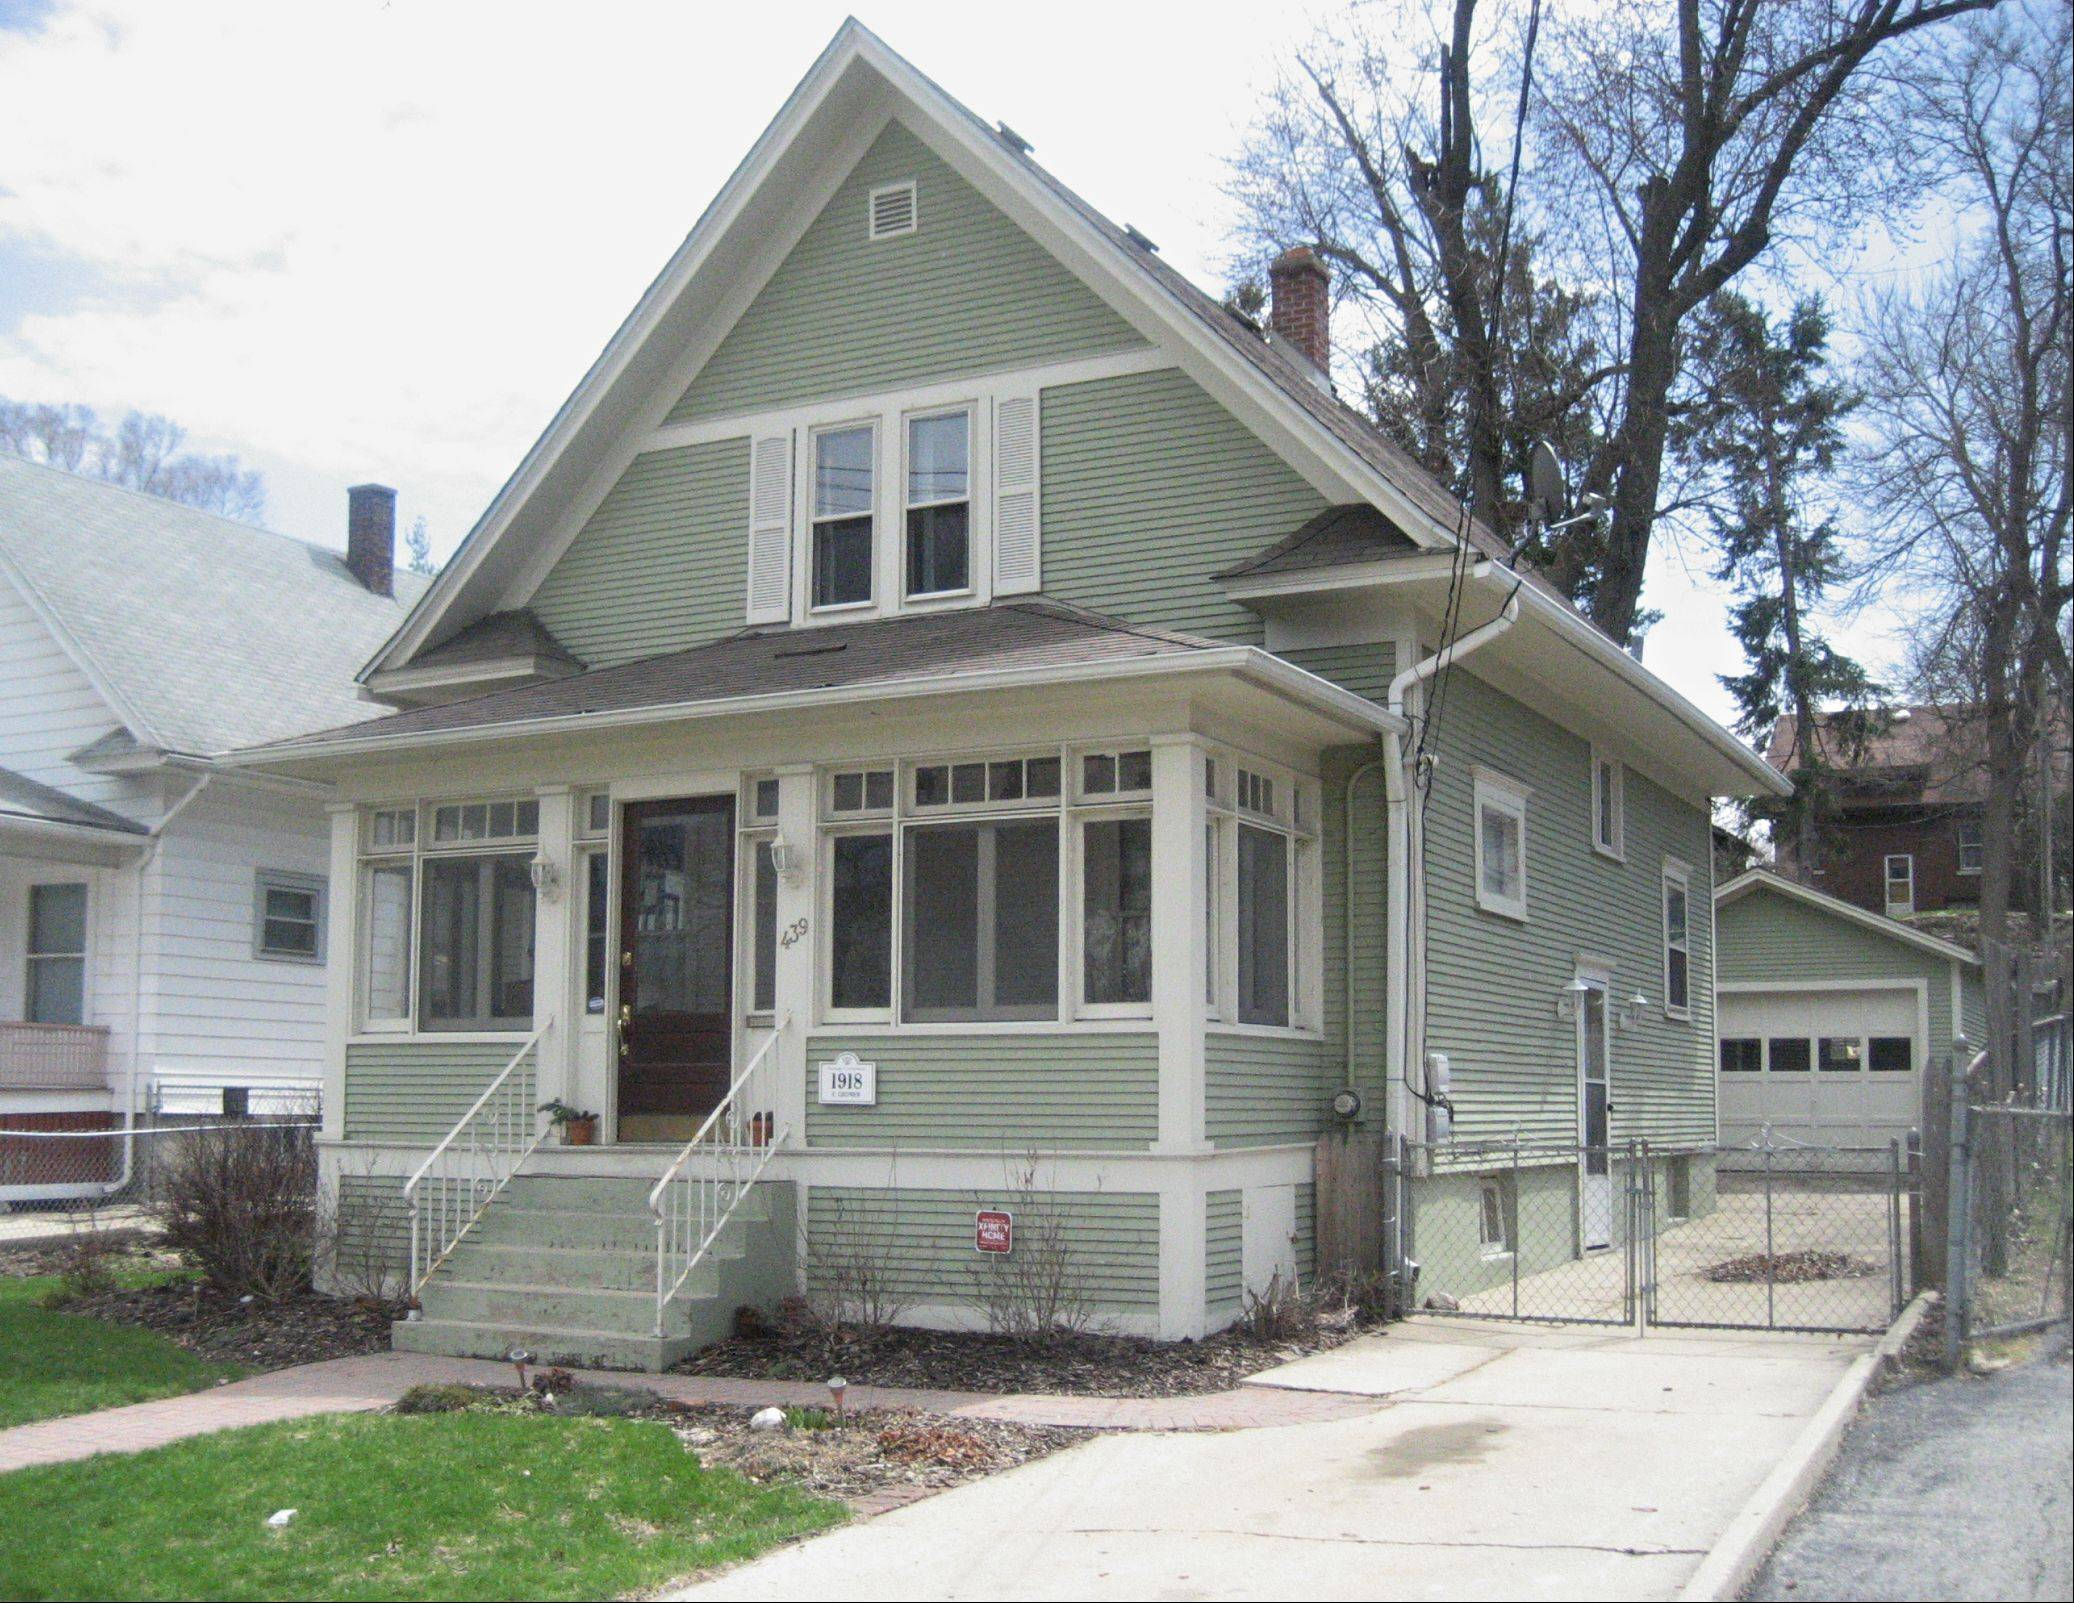 "Jennifer Fukala has been restoring her home at 439 W. Chicago St. since purchasing it 4� years ago. ""Since I bought it ... it's been a dream of mine to be on the house tour,"" she said."